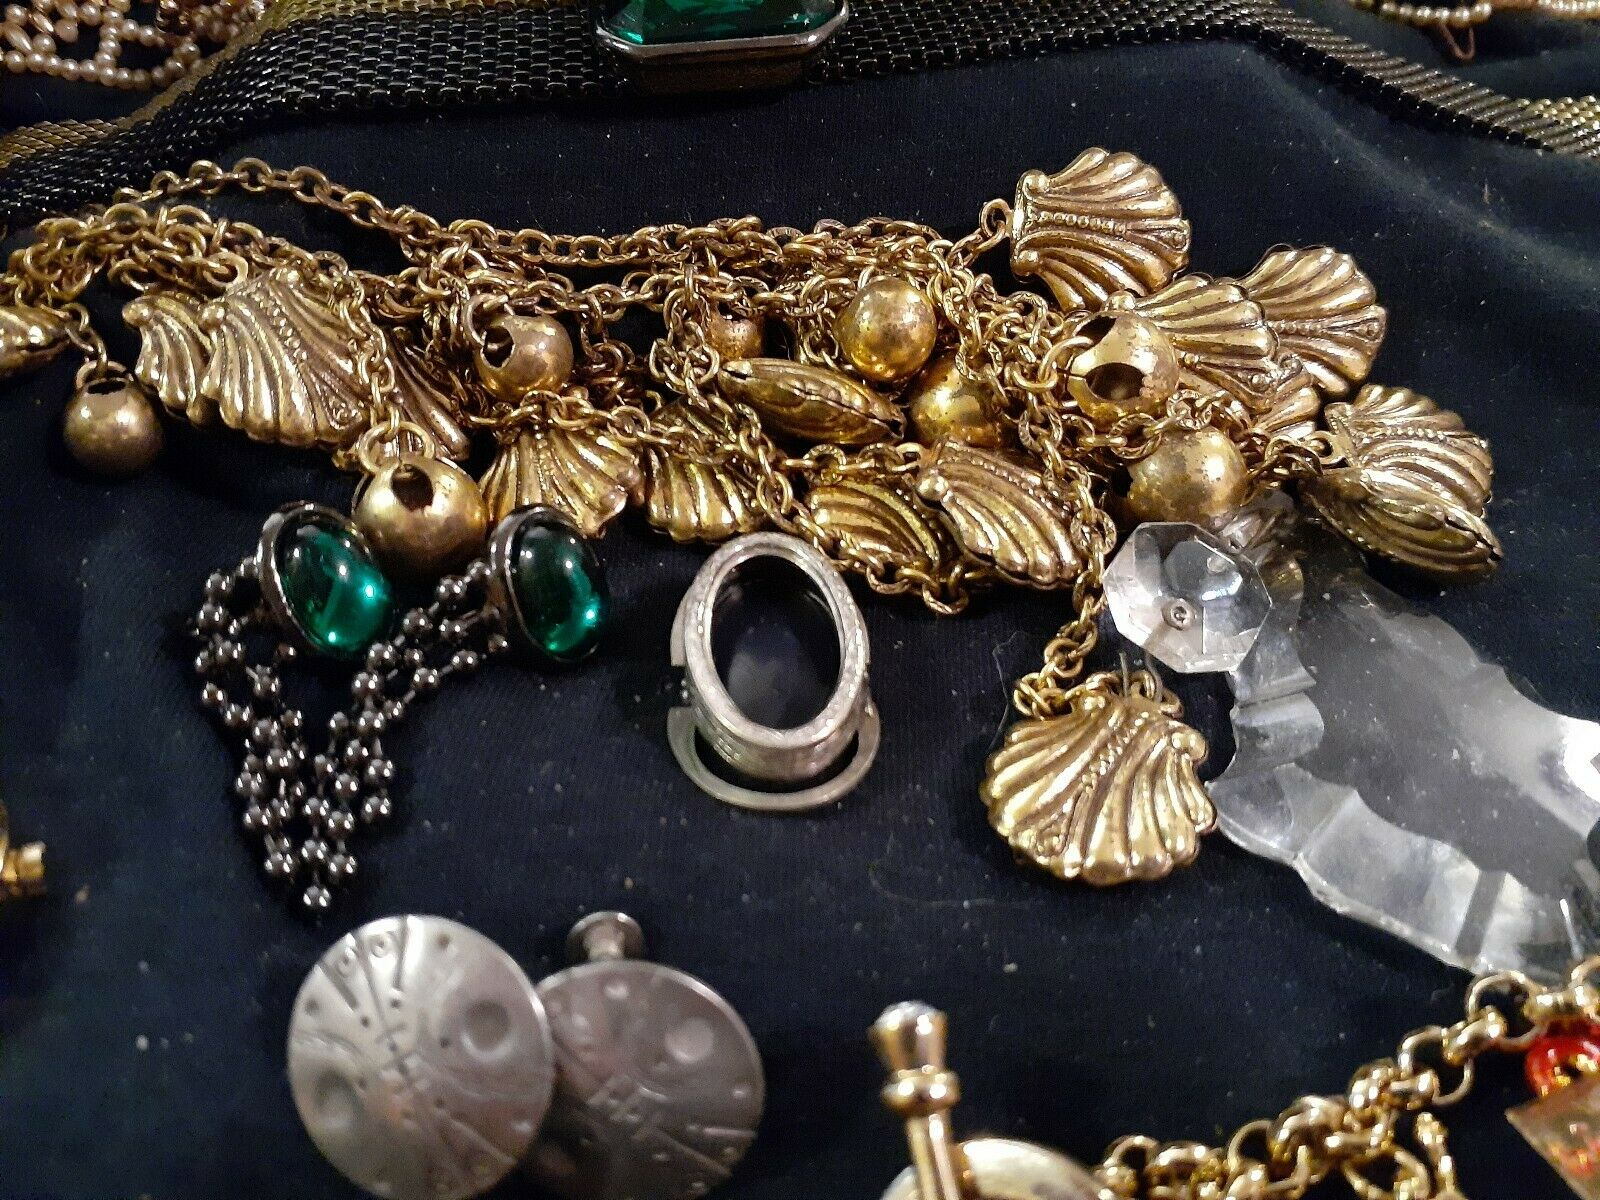 LOT OF VINTAGE COSTUME JEWELRY WATCHES CHARM BRAC… - image 5